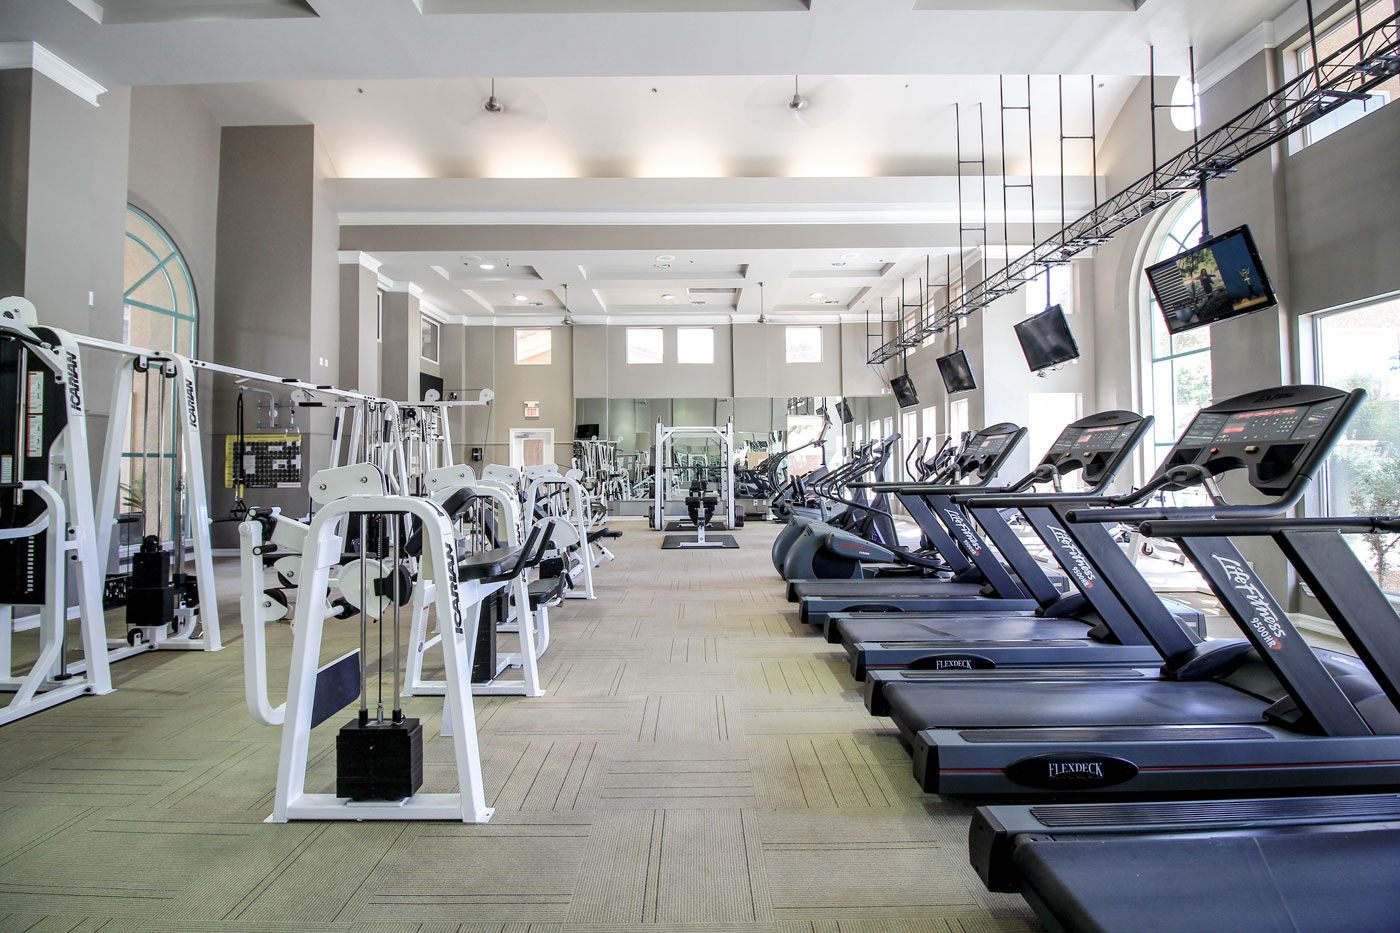 Large gym with treadmills lining a wall with windows.